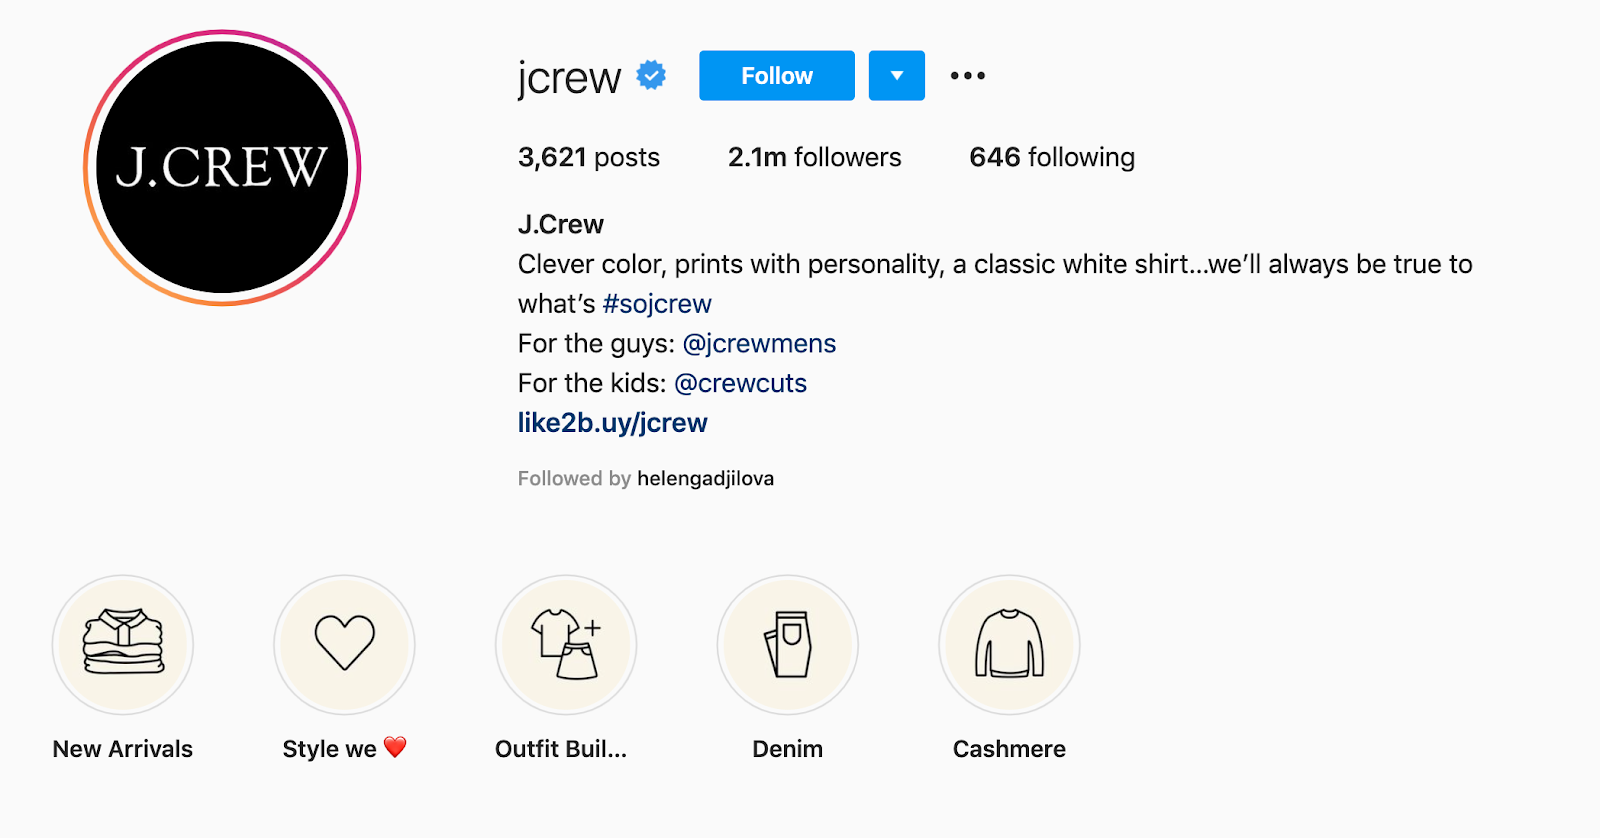 Example of JCrew's story highlights on their Instagram profile